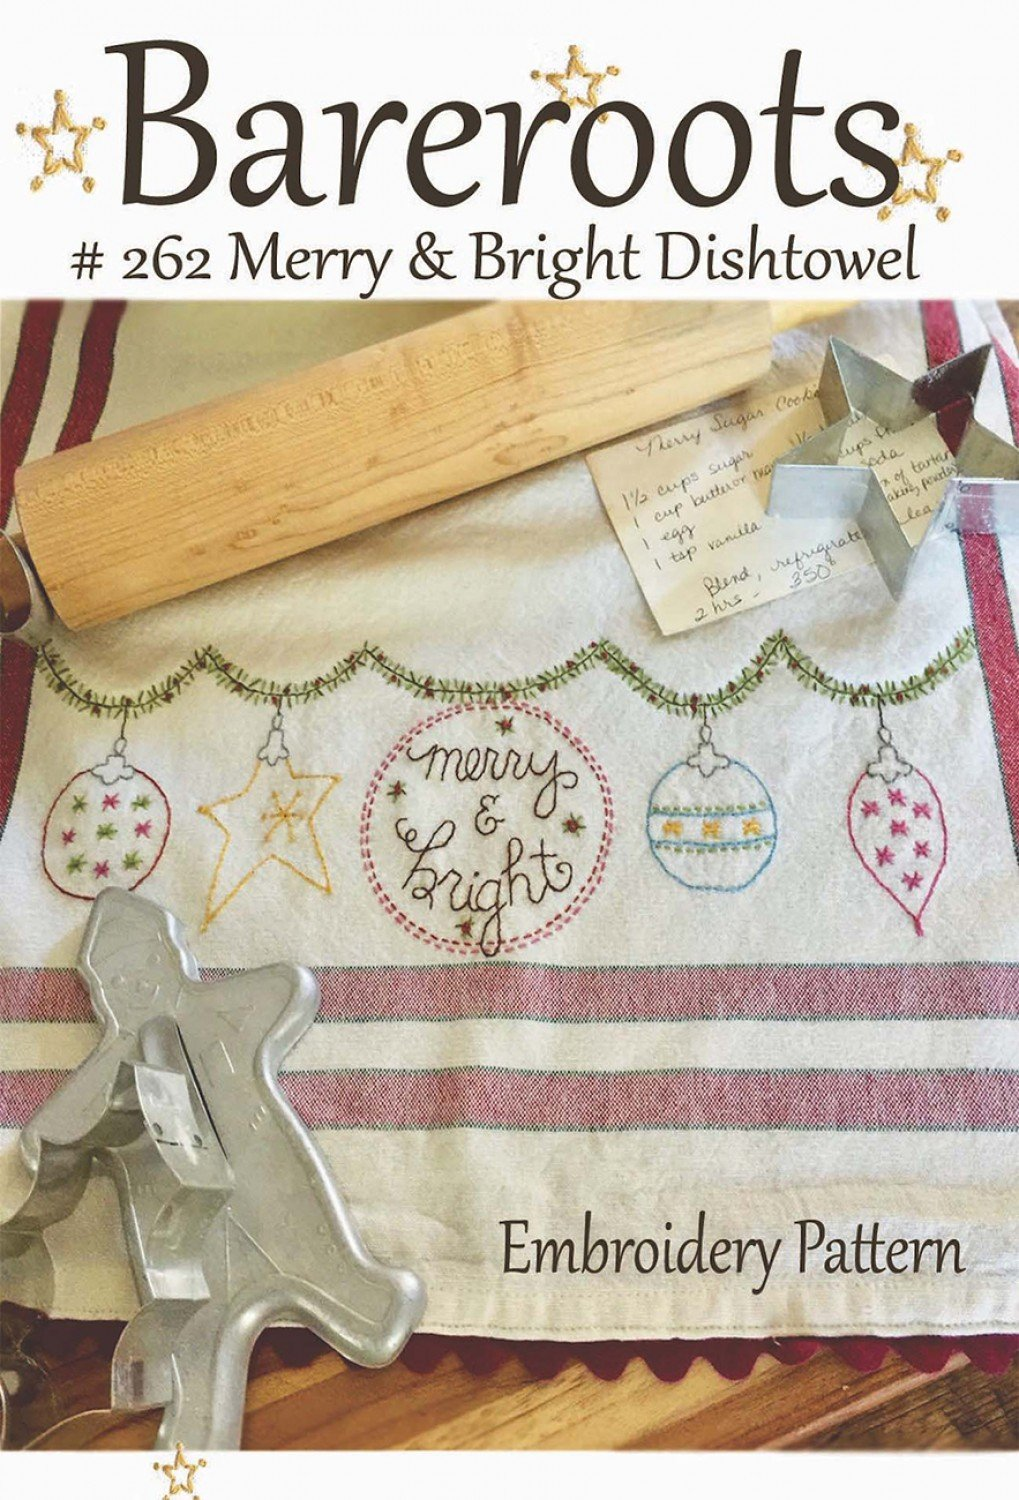 Bareroots - Dishtowel Pattern and Floss Kit - 12 December - Merry and Bright - BR262K